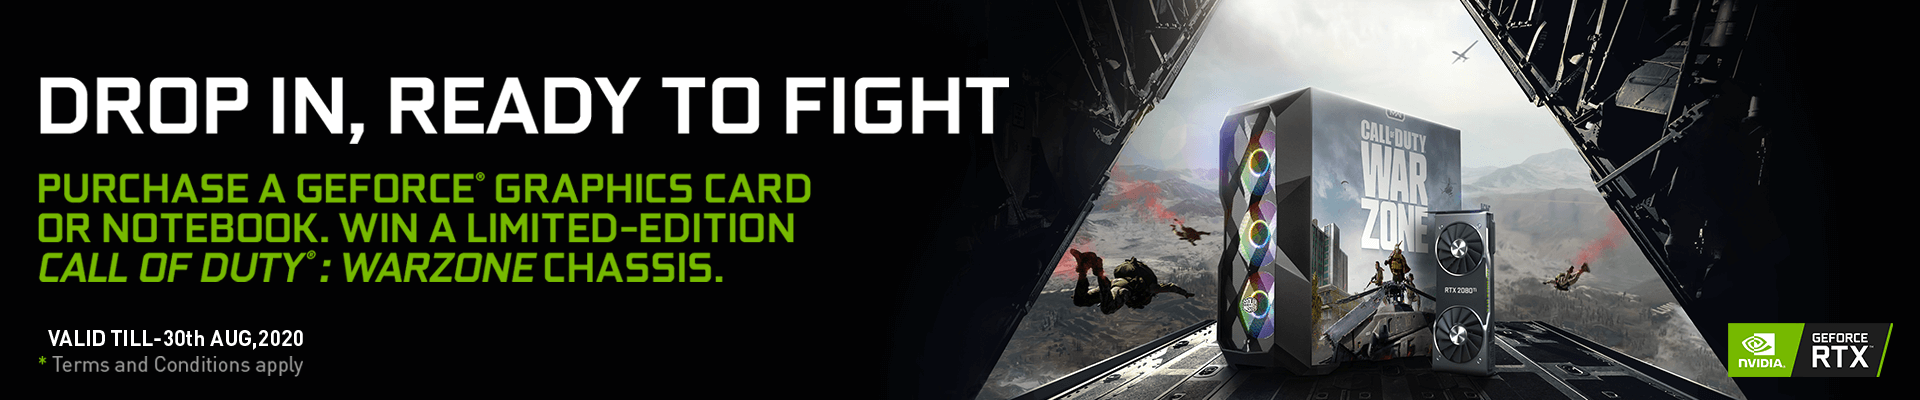 Nvidia GeForce COD:Warzone Campaign